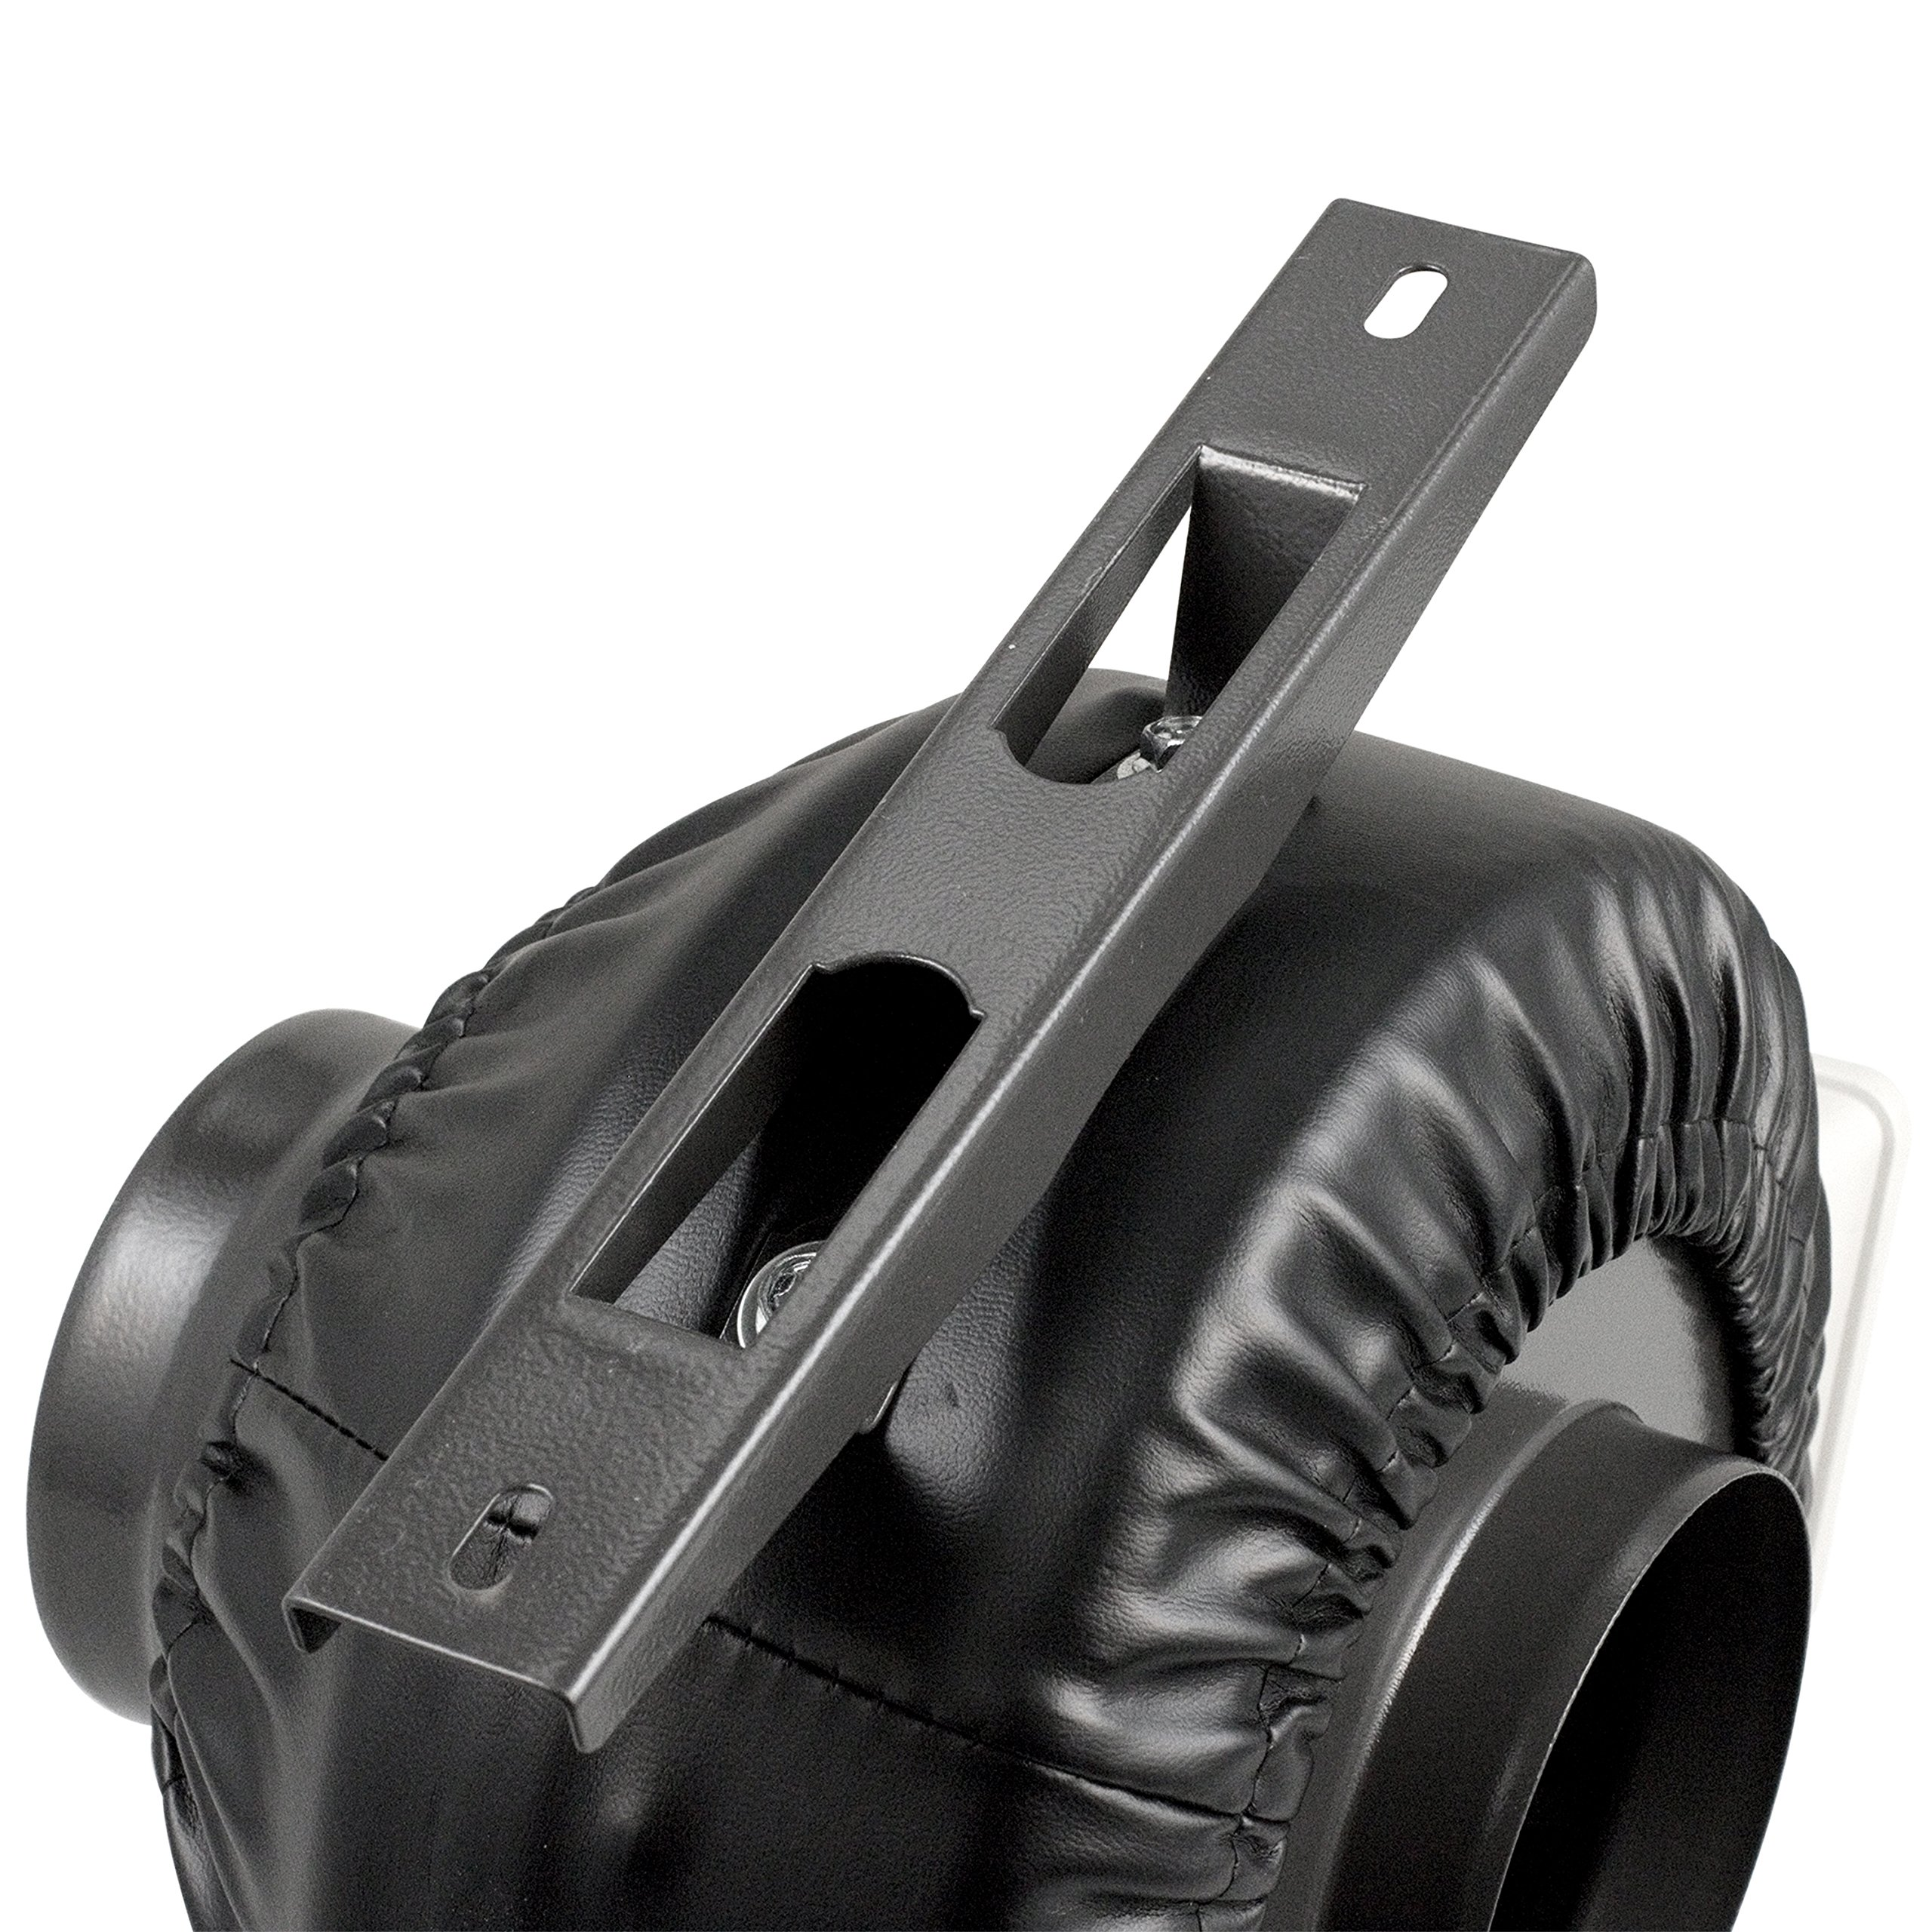 Yield Lab 6 inch 440 CFM Duct Inline Fan with 6'' Carbon Filter Ducting and Clamps by Yield Lab (Image #7)